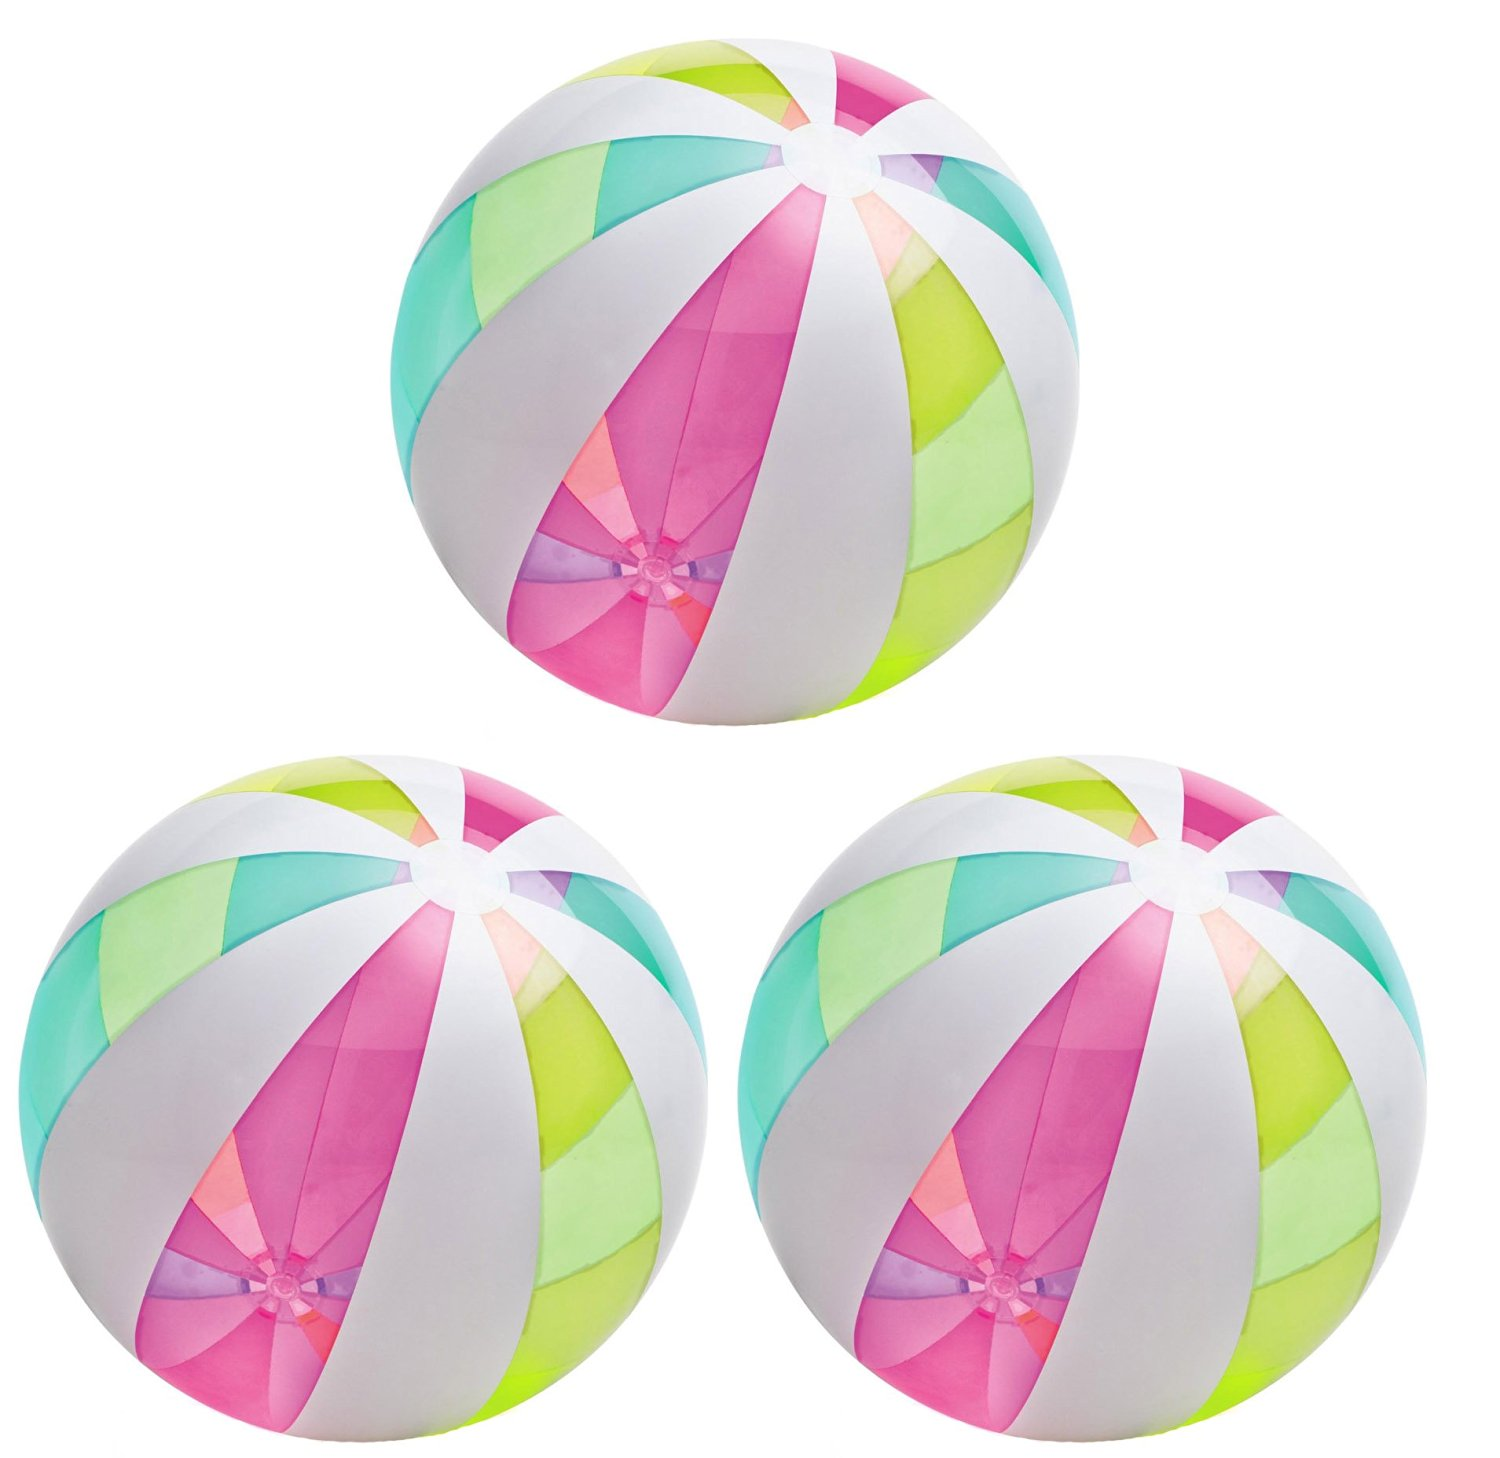 Intex Giant Classic Inflatable Glossy Panel Colorful Beach Ball (3-Pack)